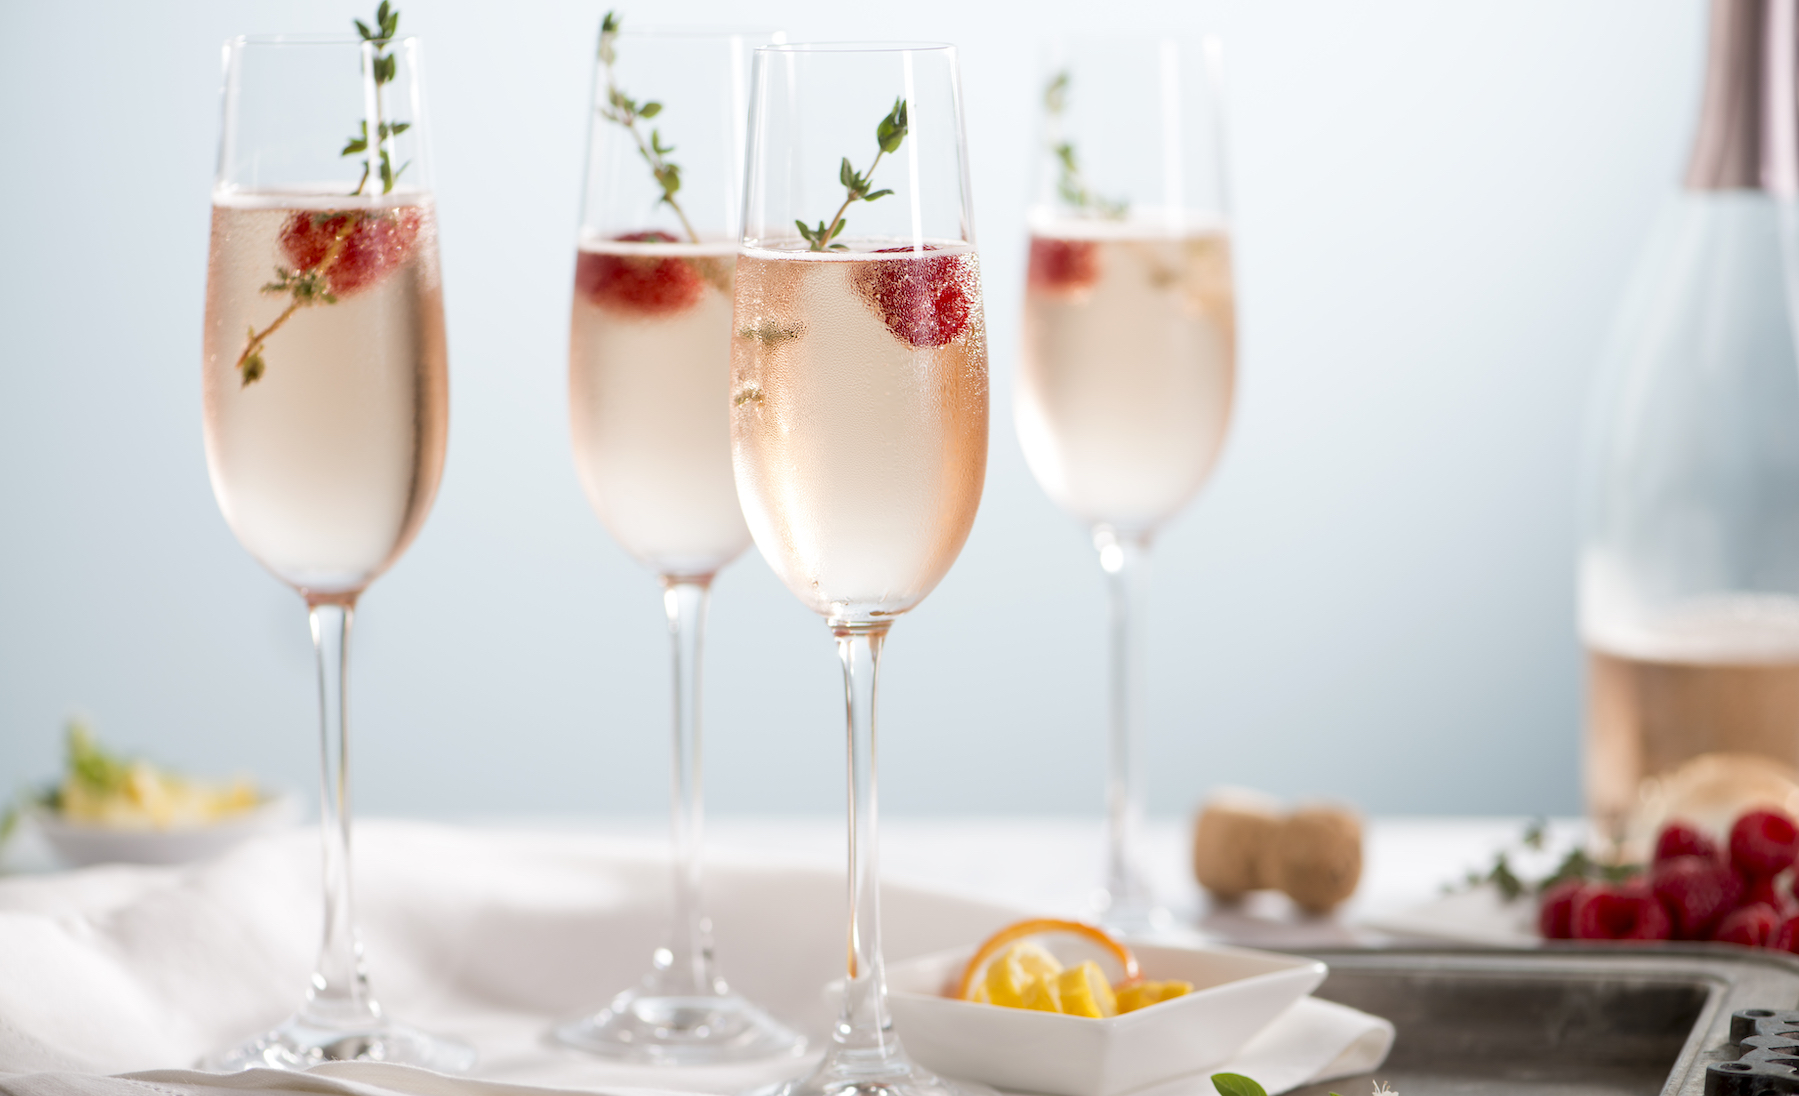 Rose-Champagne-Cocktails-861681070 7360x4912 (1)